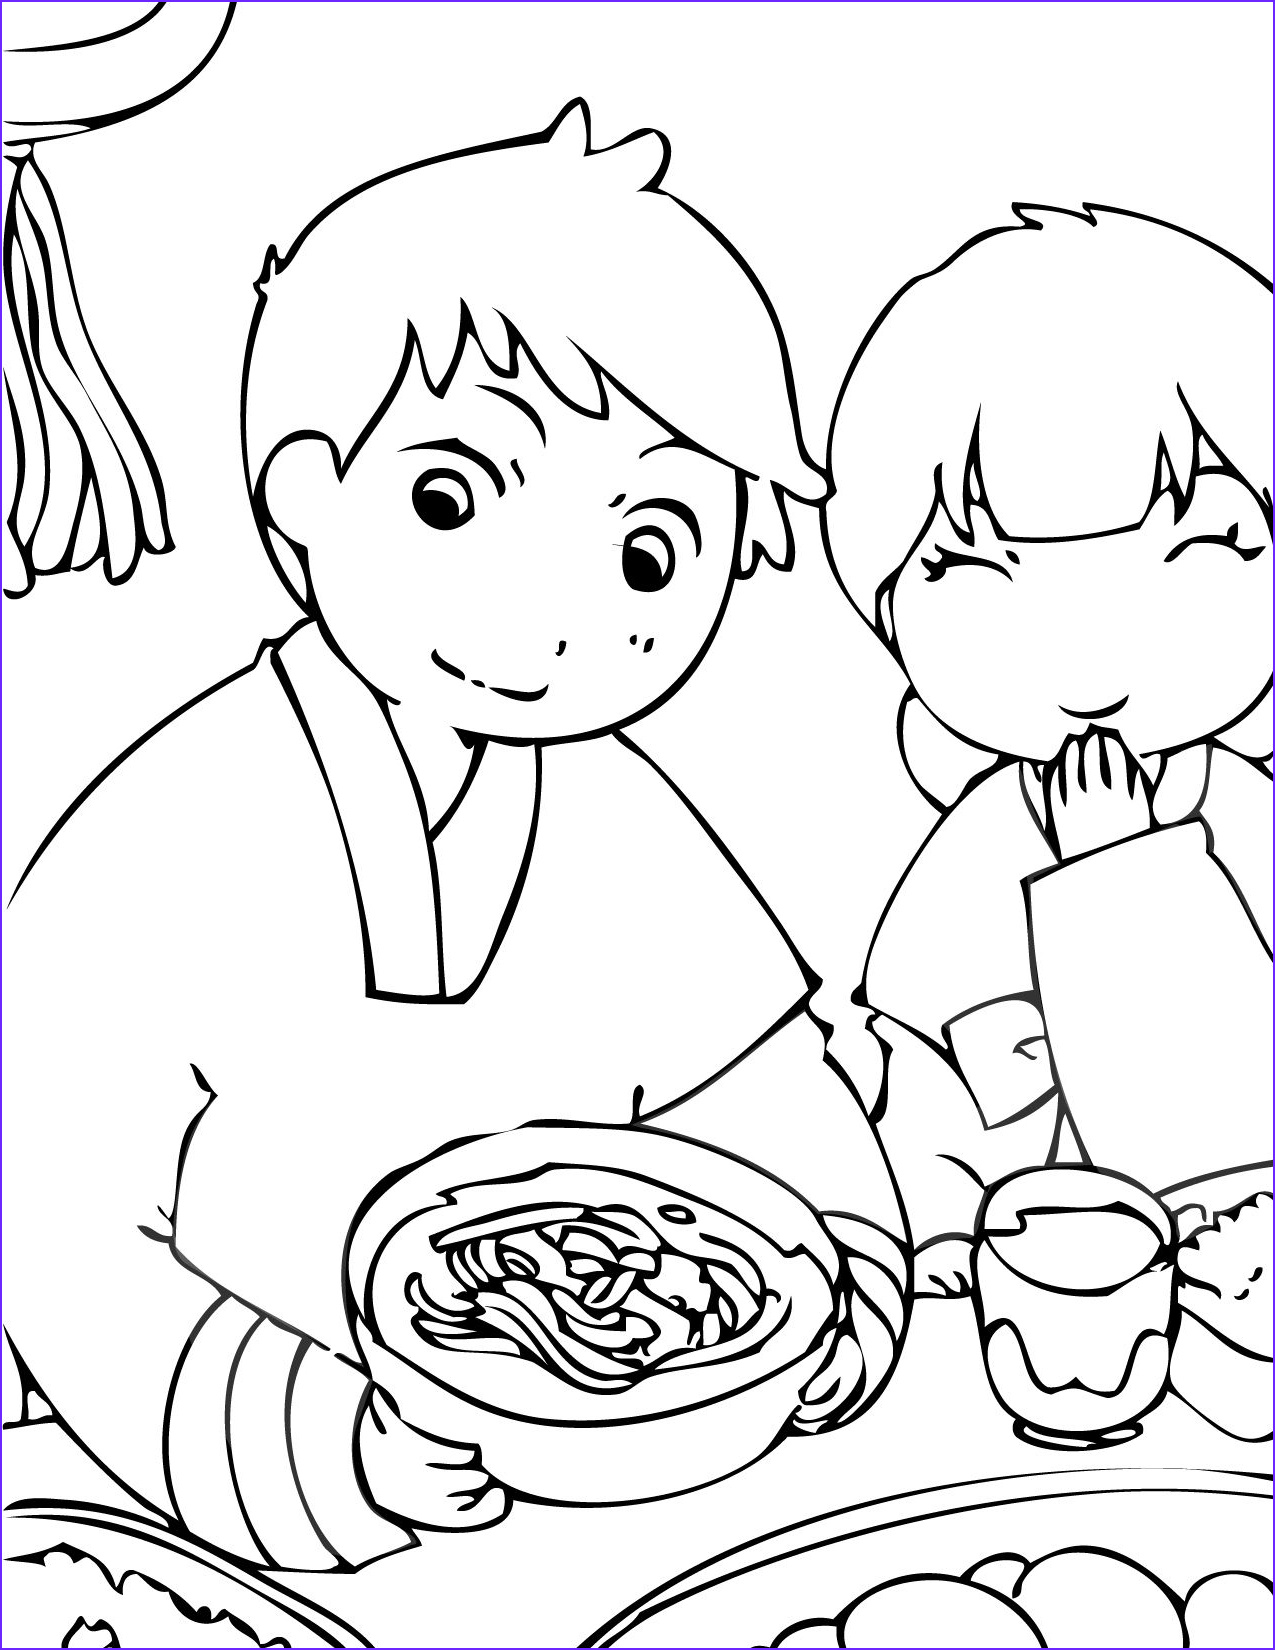 Korean Coloring Book Inspirational Stock Korea Coloring Page Print This Page